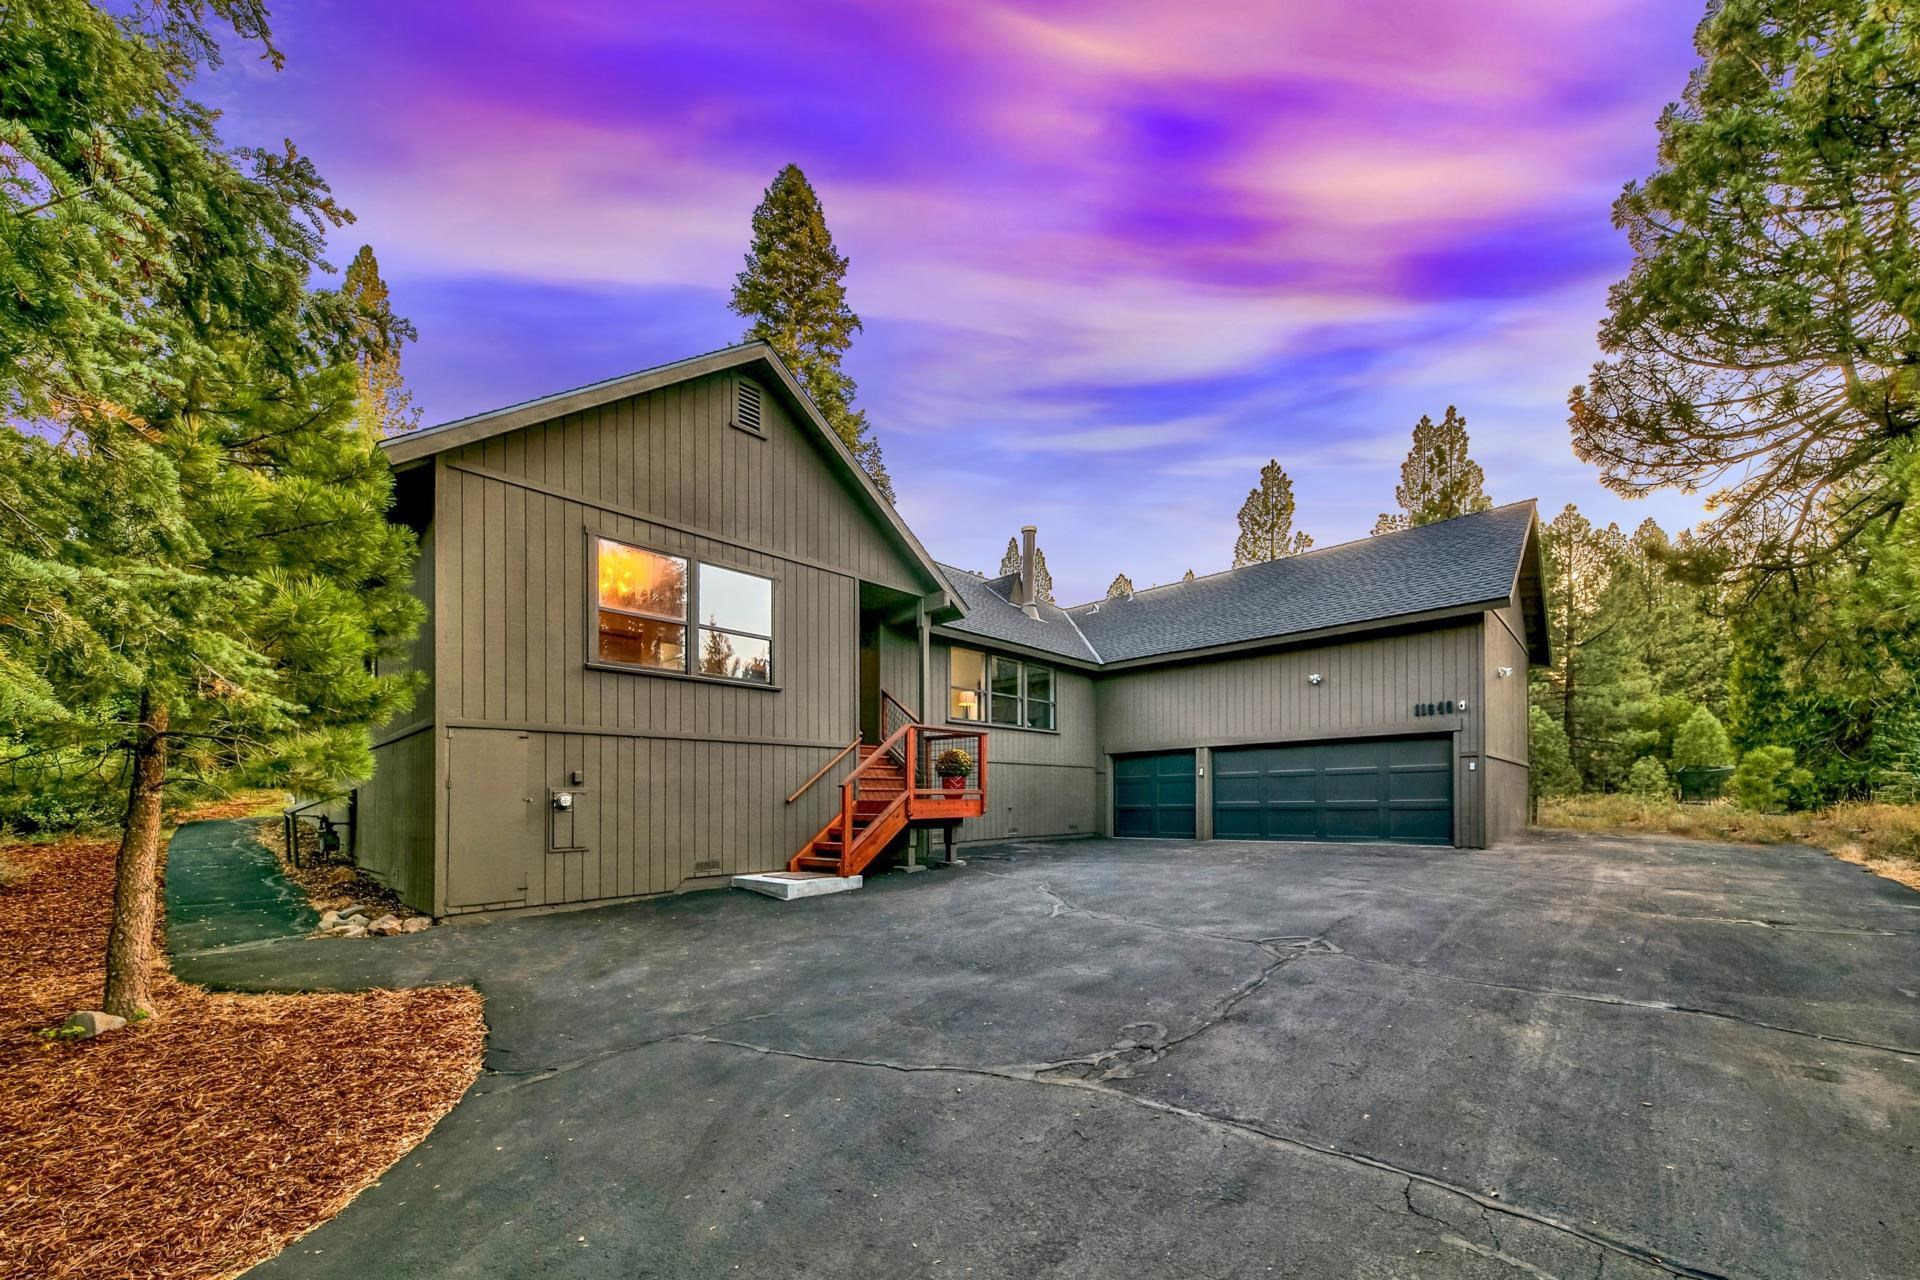 Image for 11640 Sawtooth Court, Truckee, CA 96161-322